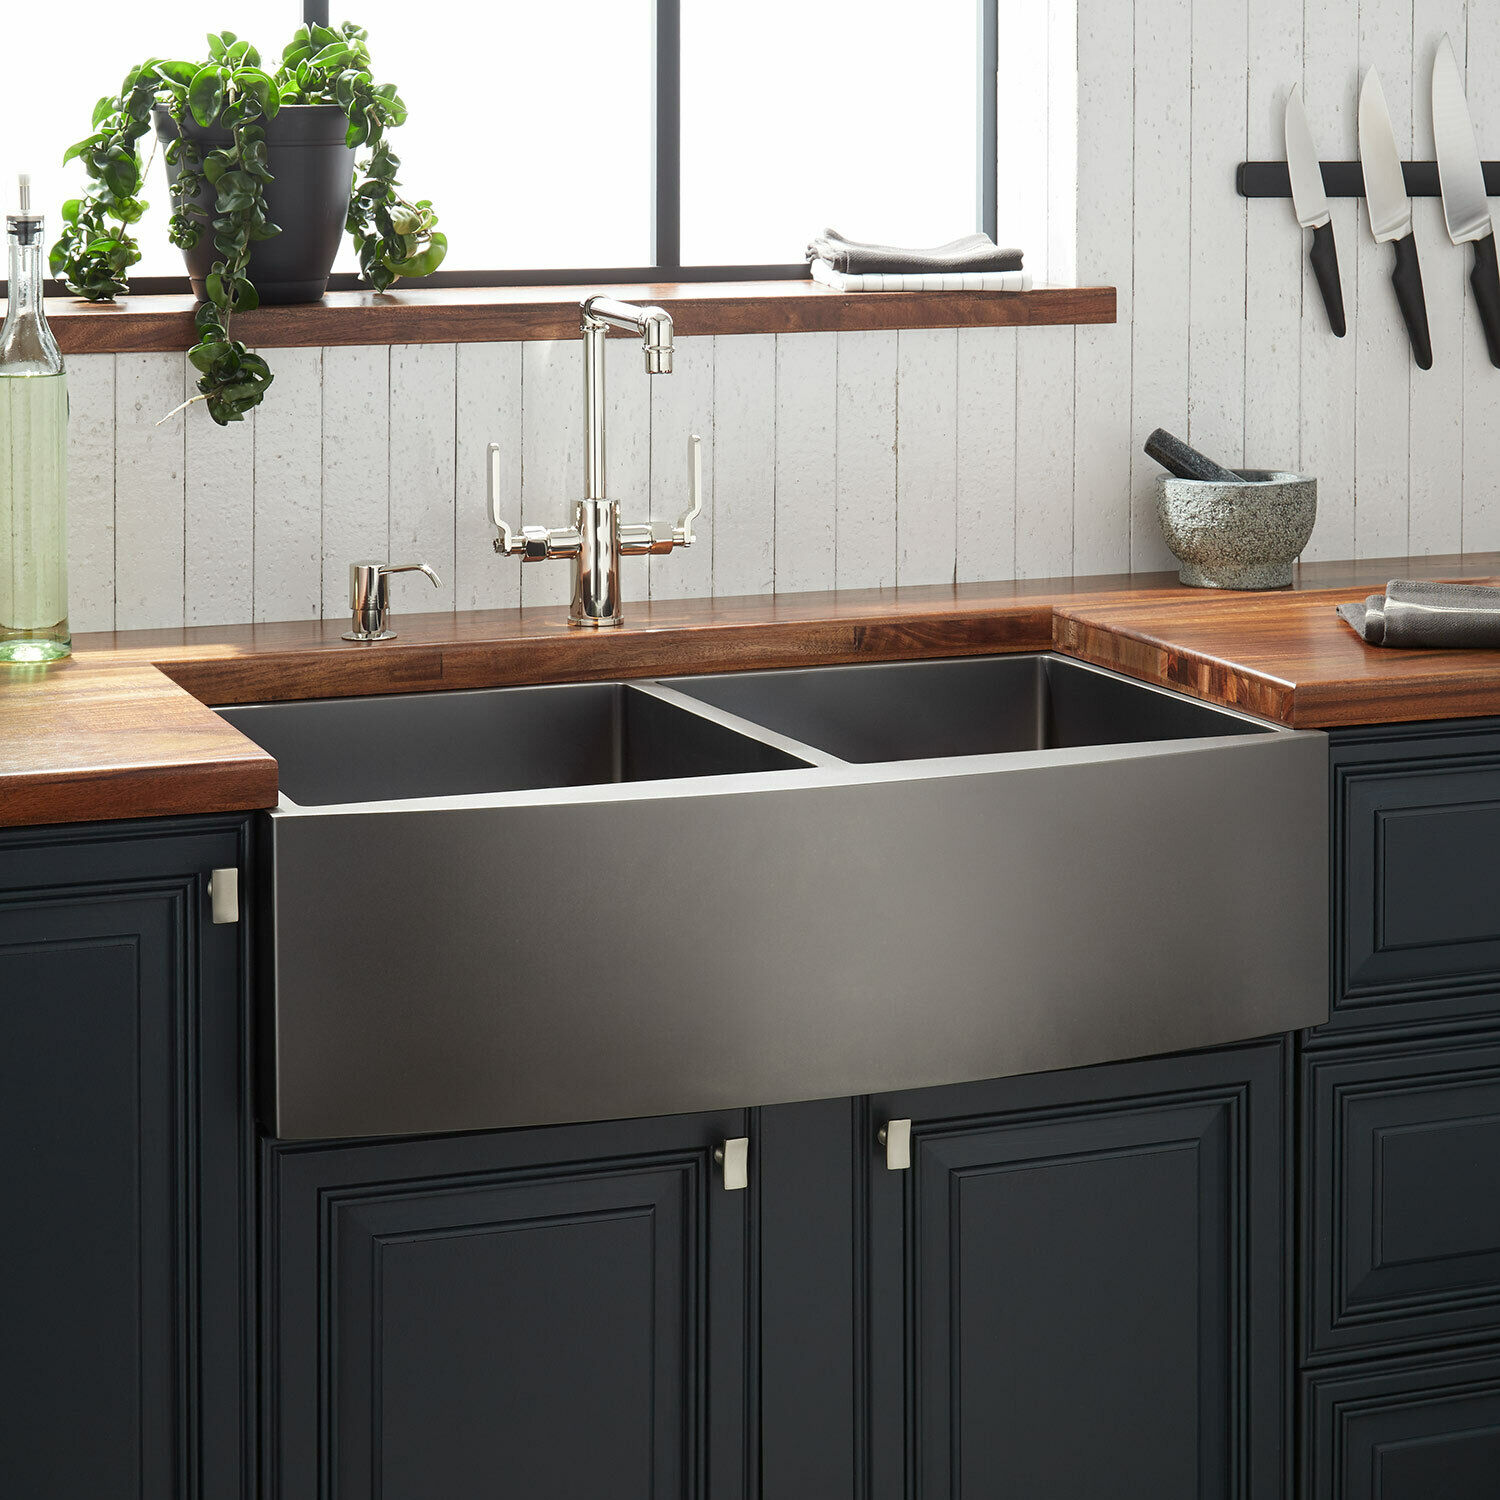 Farmhouse Sink.33 Atlas Double Bowl Stainless Steel Farmhouse Sink Curved Apron